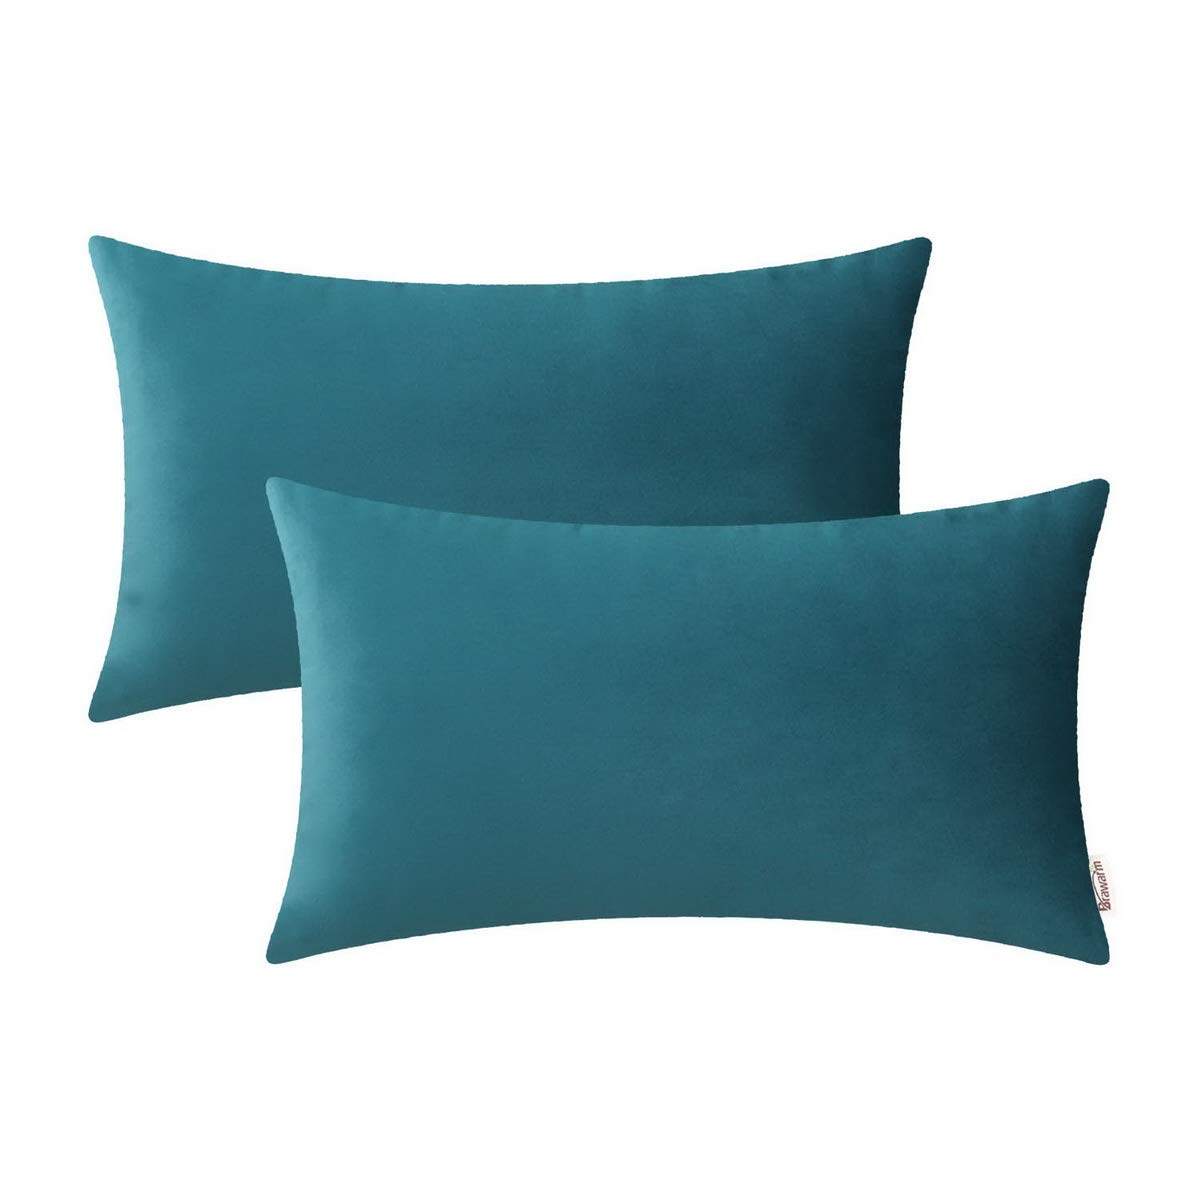 BRAWARM Pack of 2 Cozy Bolster Pillow Covers Cases for Couch Sofa Home Decoration Solid Dyed Soft Velvet Both Sides 12 X 20 Inches Teal